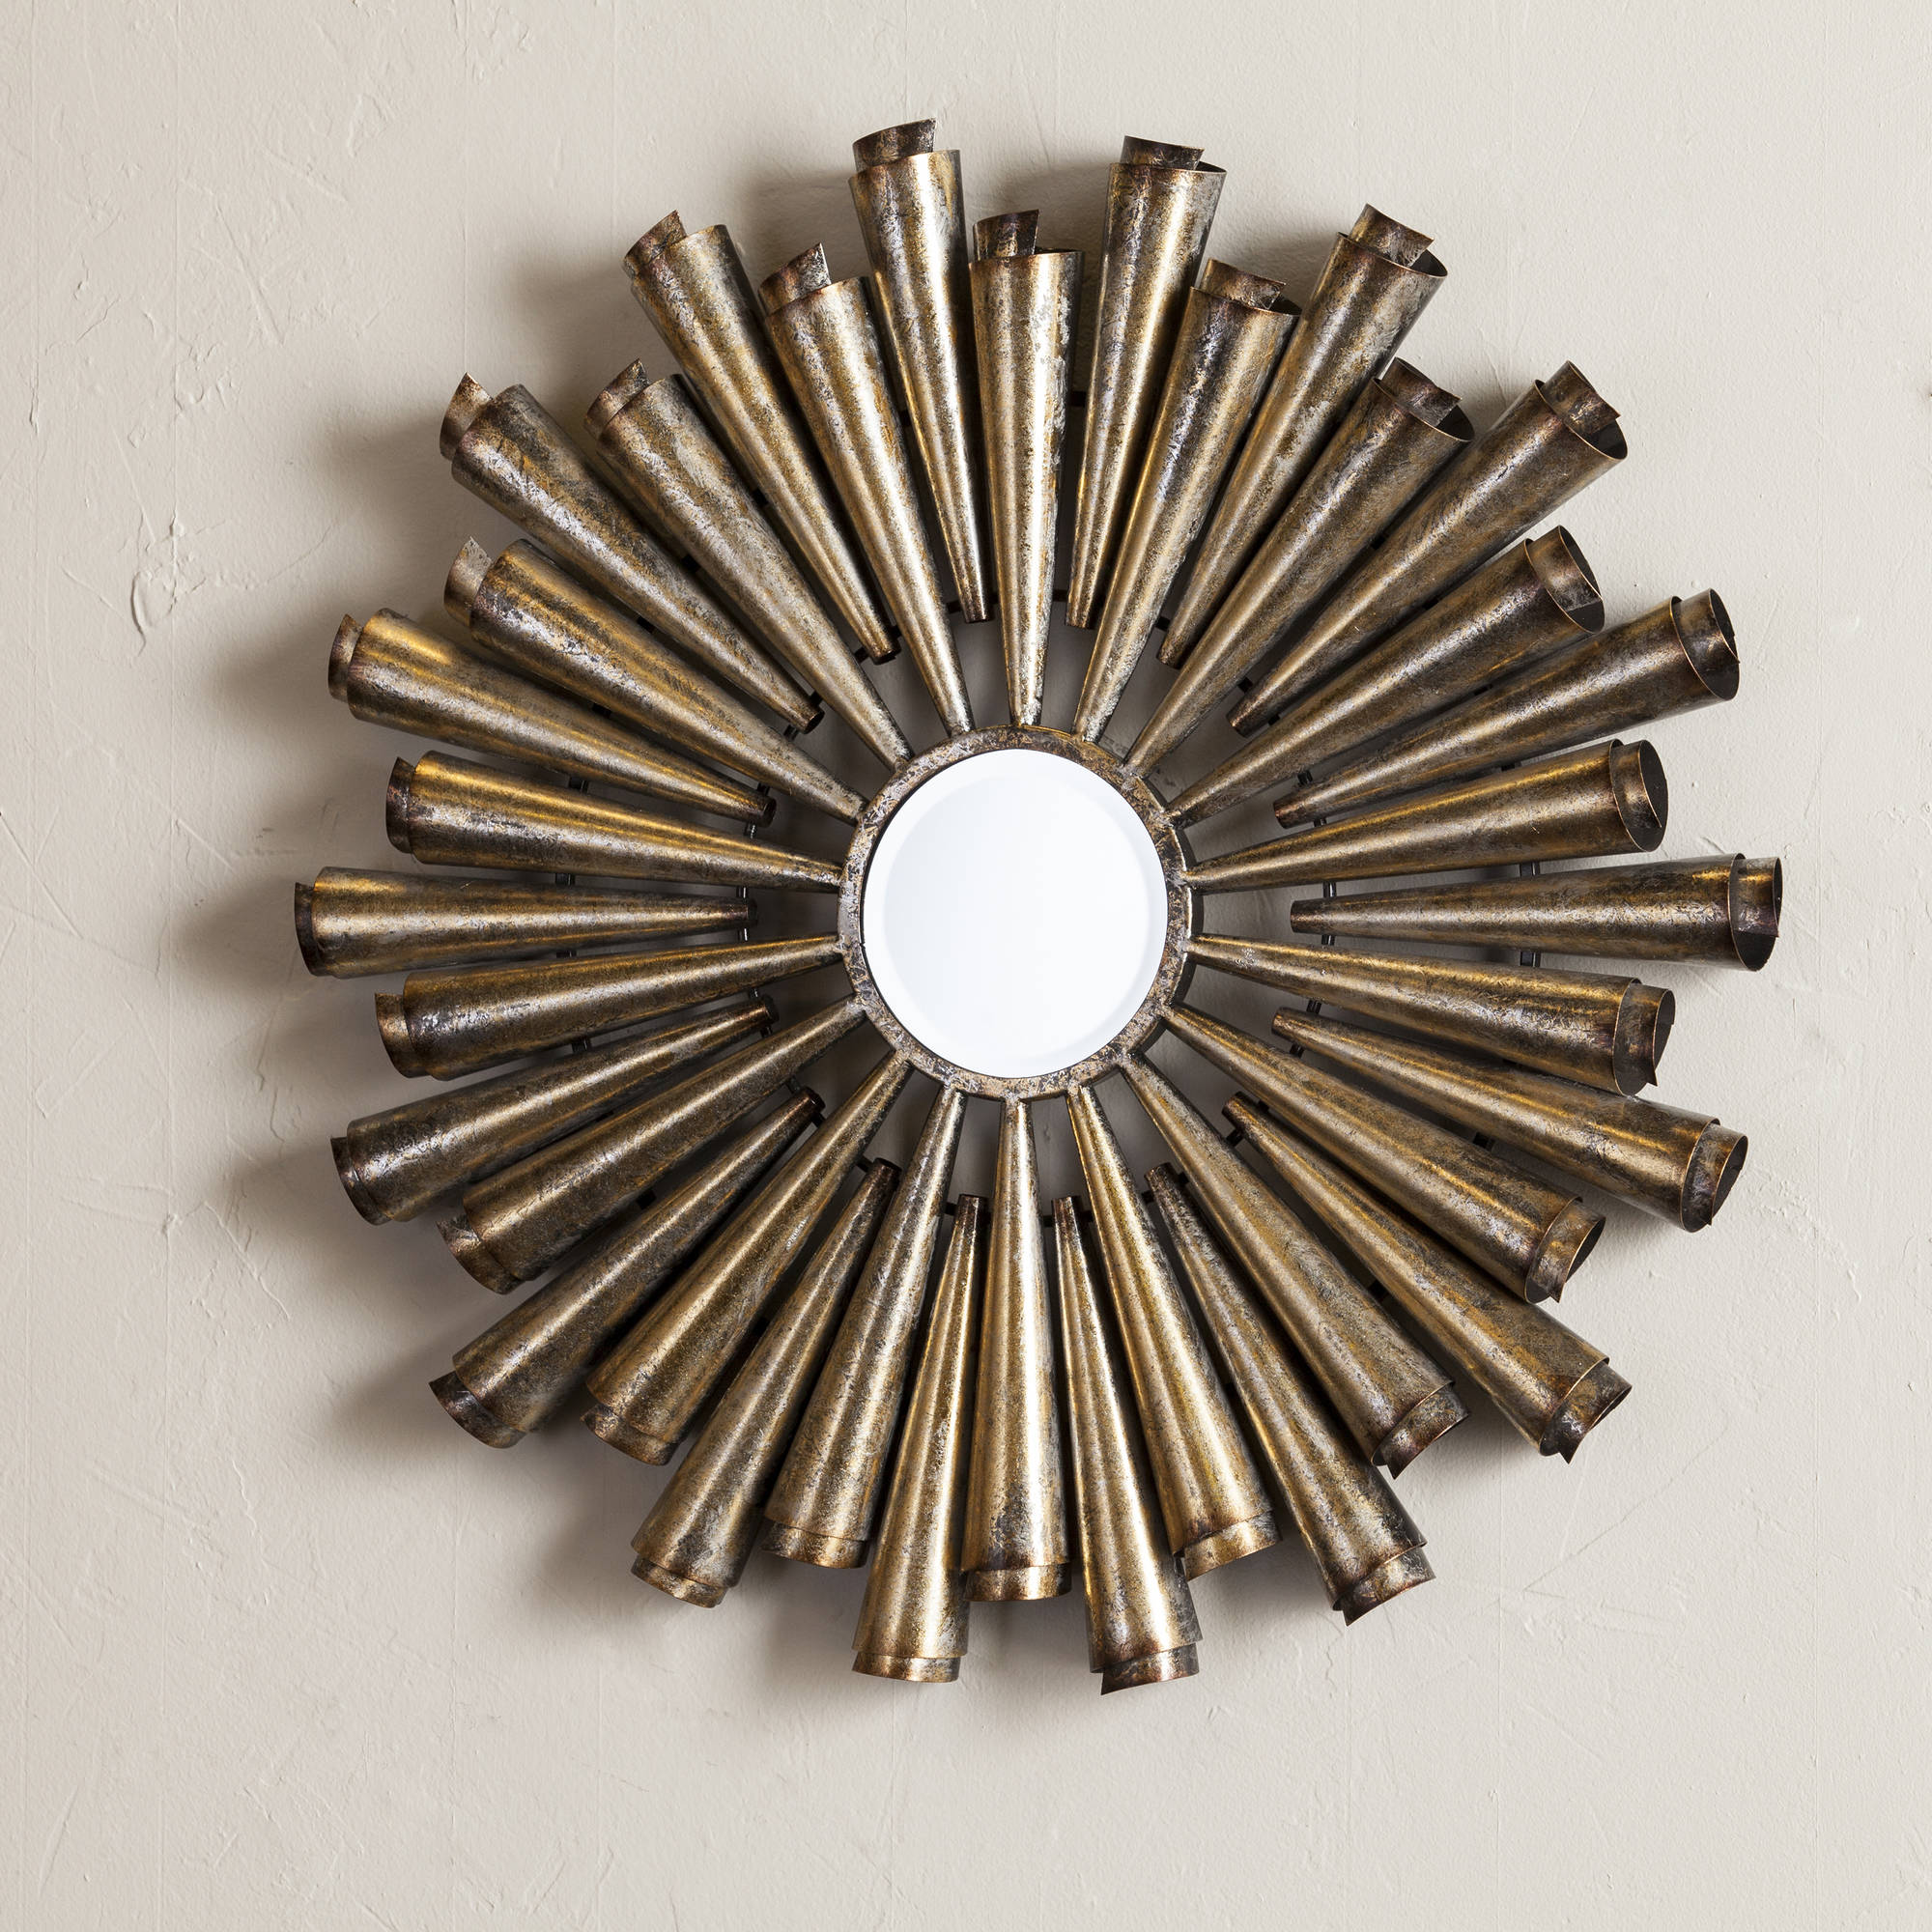 Southern Enterprises Metal Pipes Decorative Mirror, Gold and Silver